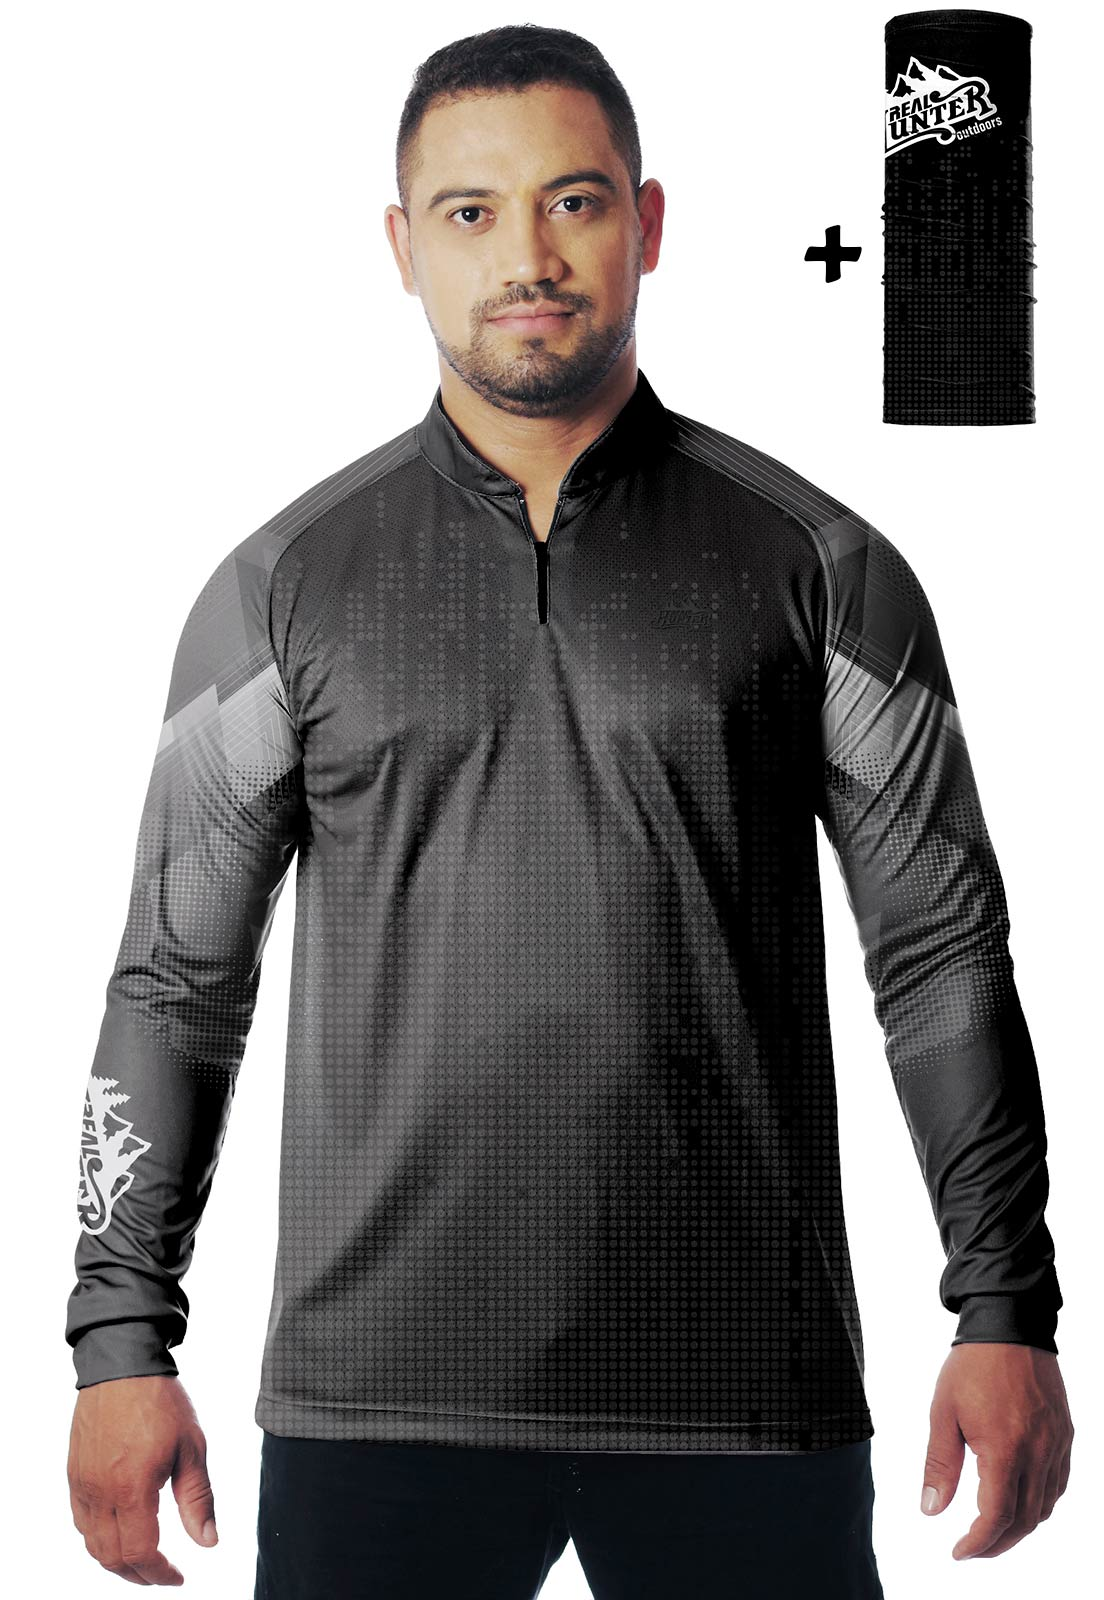 CAMISA DE PESCA FISH PRO 3 MASCULINA + BANDANA GRÁTIS  - REAL HUNTER OUTDOORS